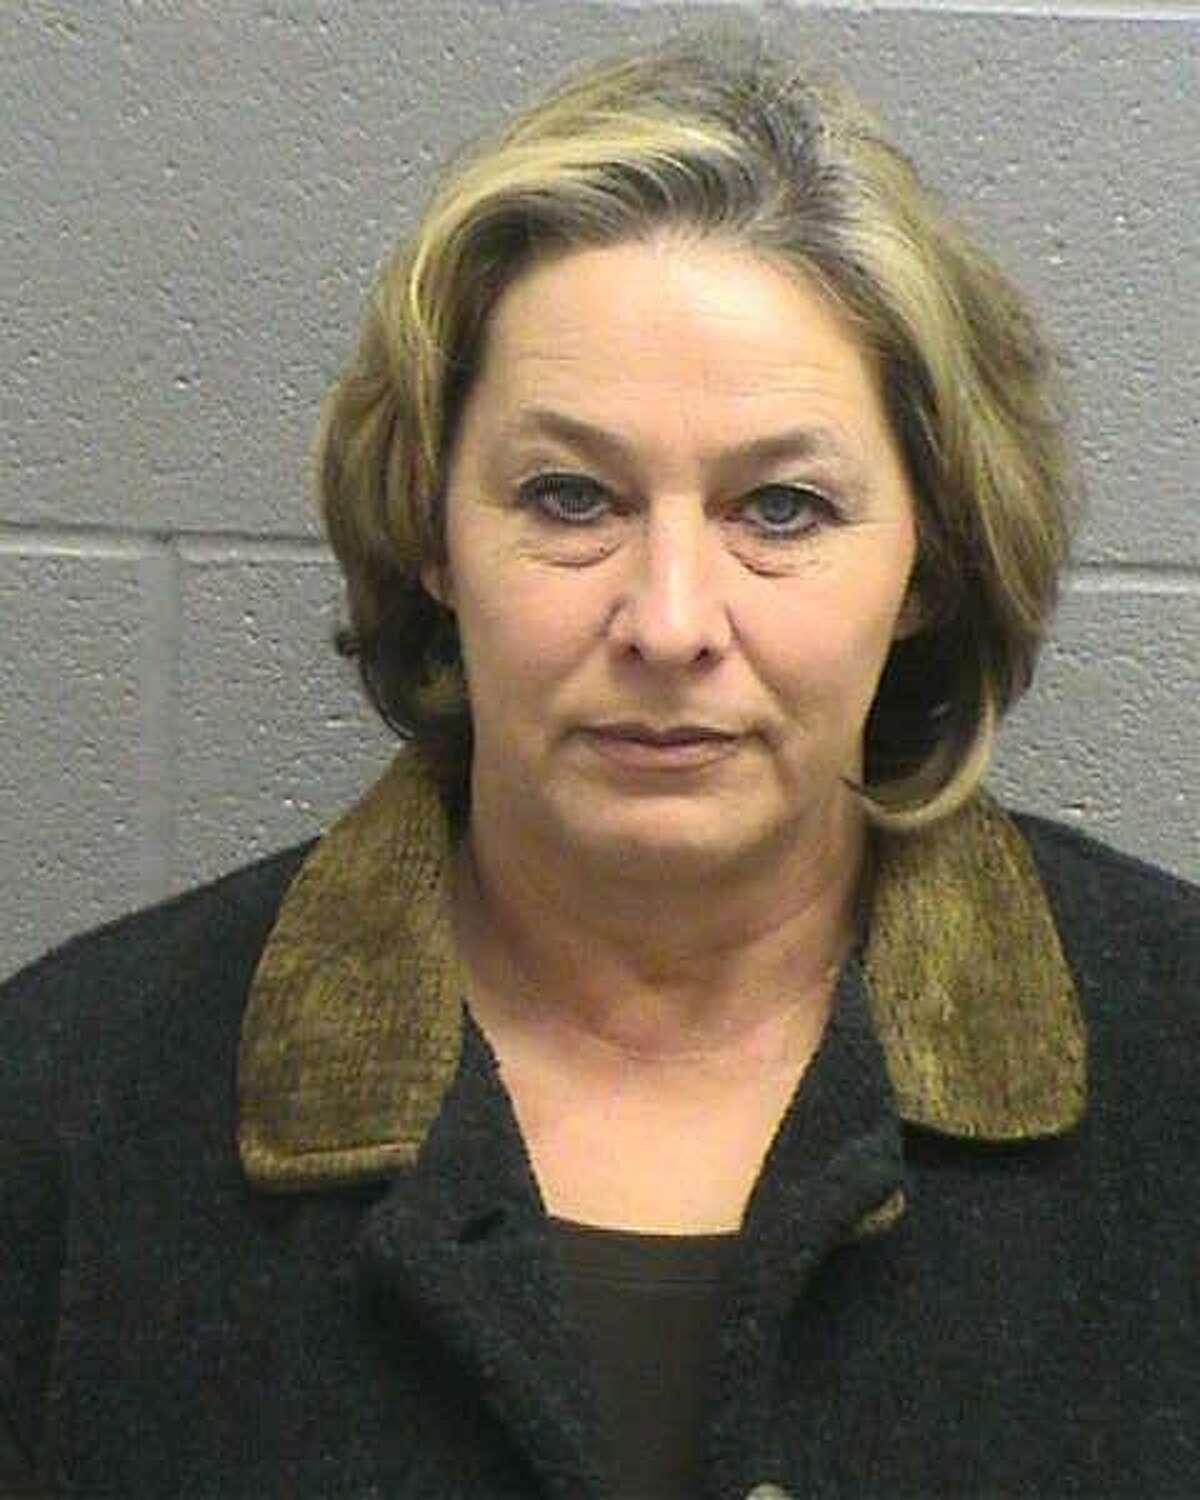 Carrie Lea Stewart, 52, was arrested March 10 on a third-degree felony charge of aggravated perjury.Stewart falsely stated that she didn't have Internet access while being investigated for accepting political contributions from a corporation. This information was supplied to a grand jury, according to the indictment.If convicted, she faces up to 10 years in prison.